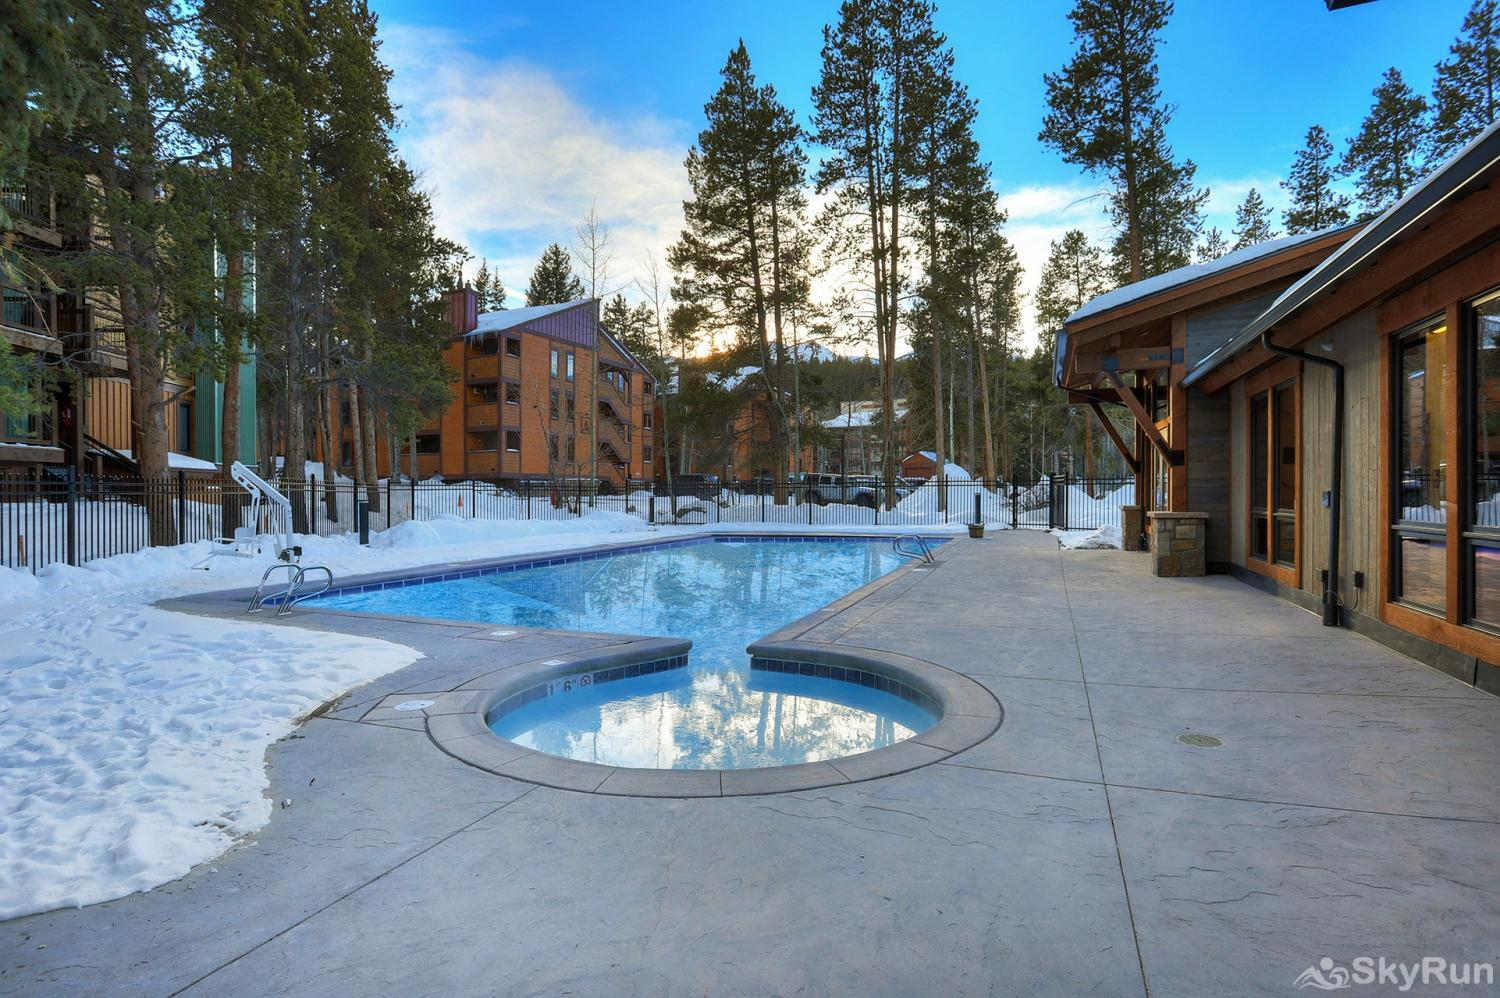 Columbine 102 Relax and unwind in the outdoor heated pool & hot tubs